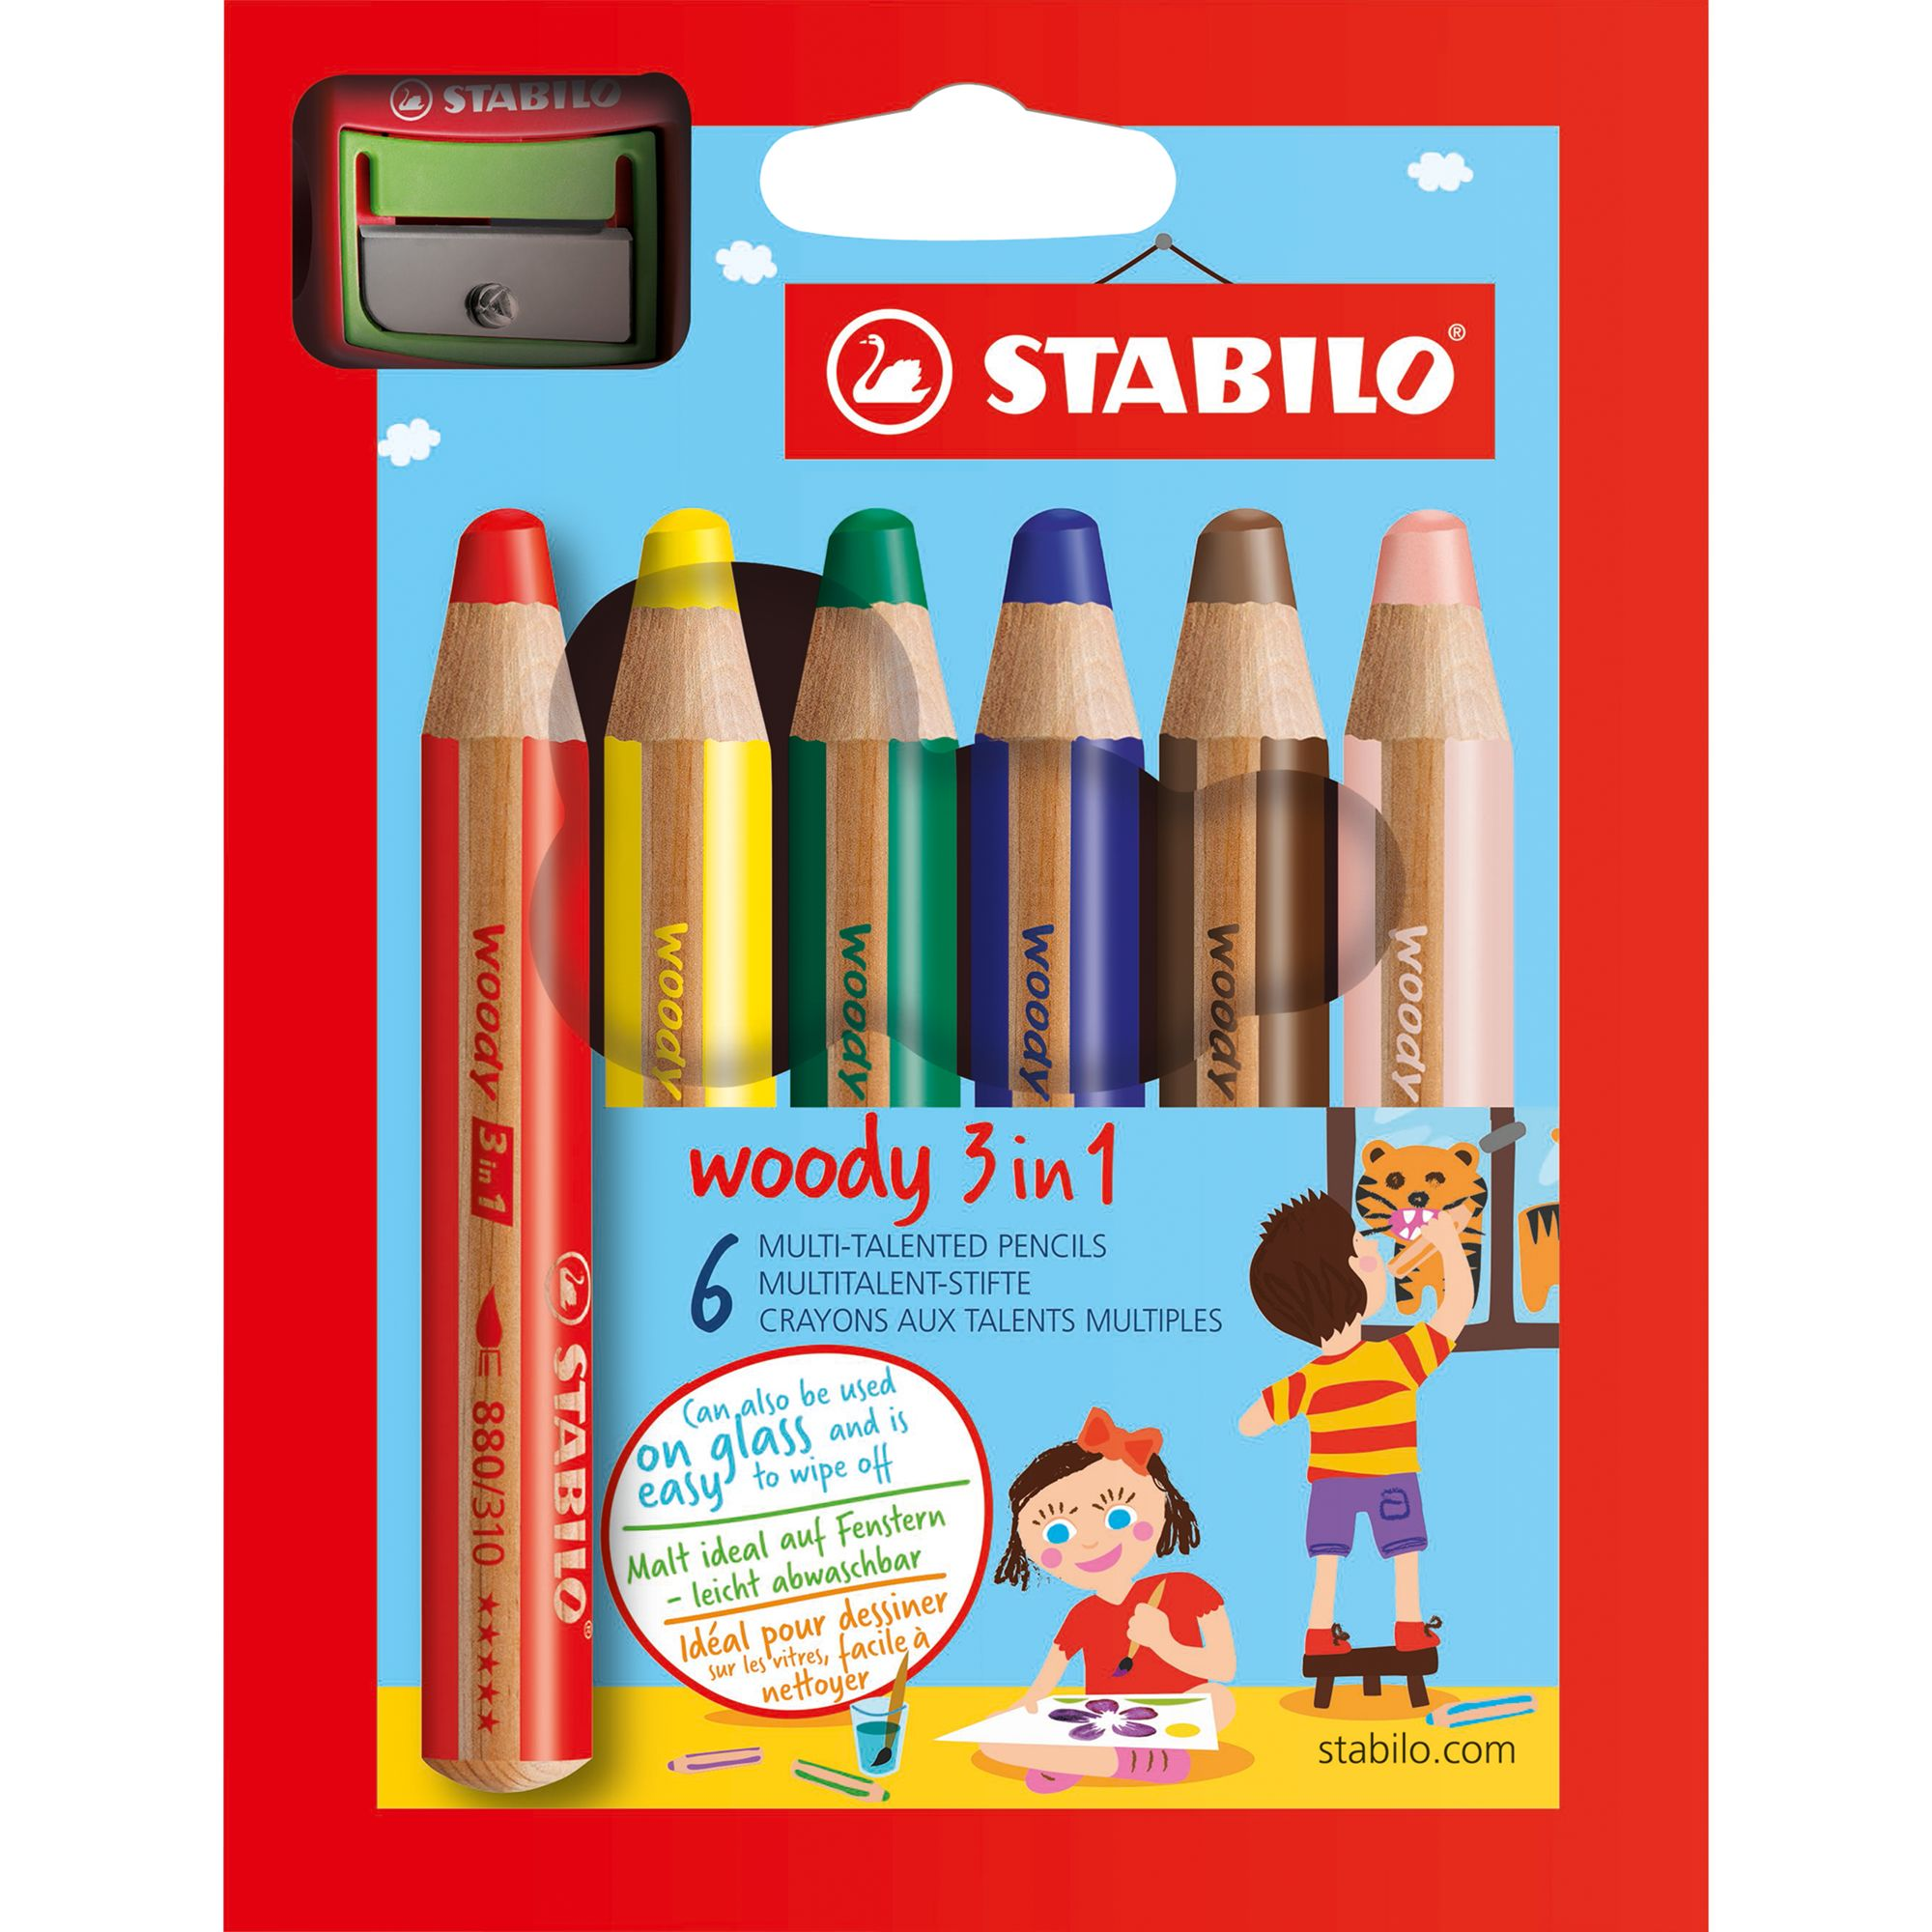 Stabilo Stabilo Woody 3 in 1 Coloured Pencils, Pack of 6, Multi